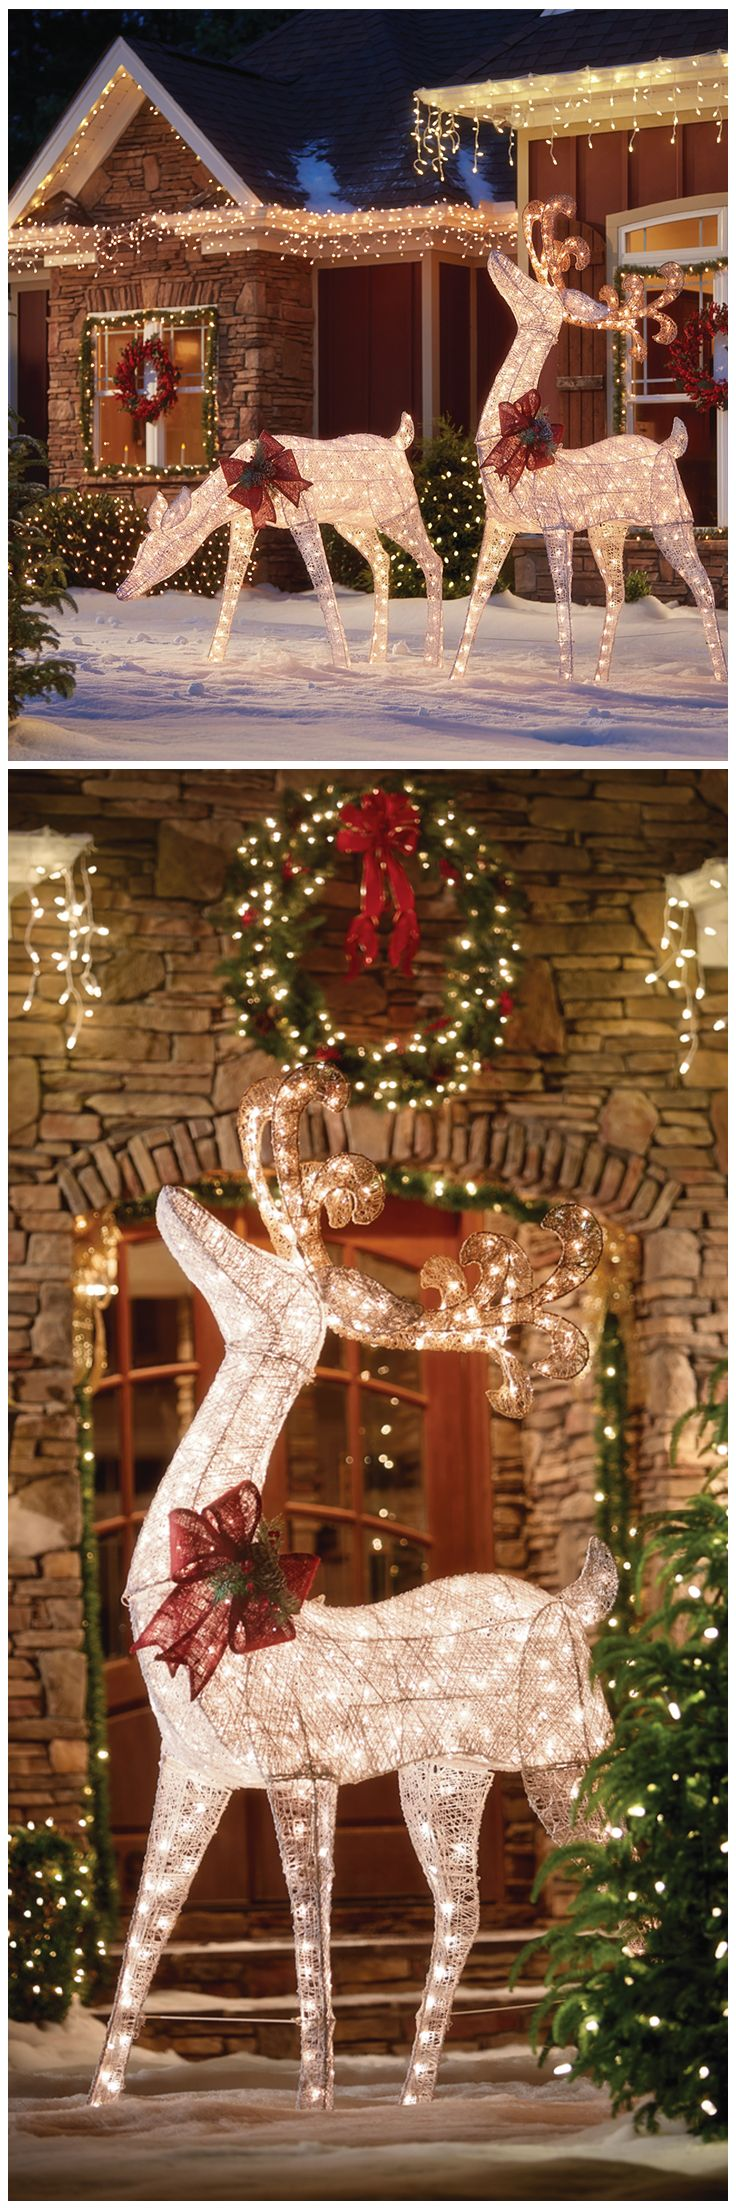 Outdoor christmas decorations 2014 - These Luminous Deer Figures Will Add A Classic Rustic Charm To Your Outdoor Christmas D Cor